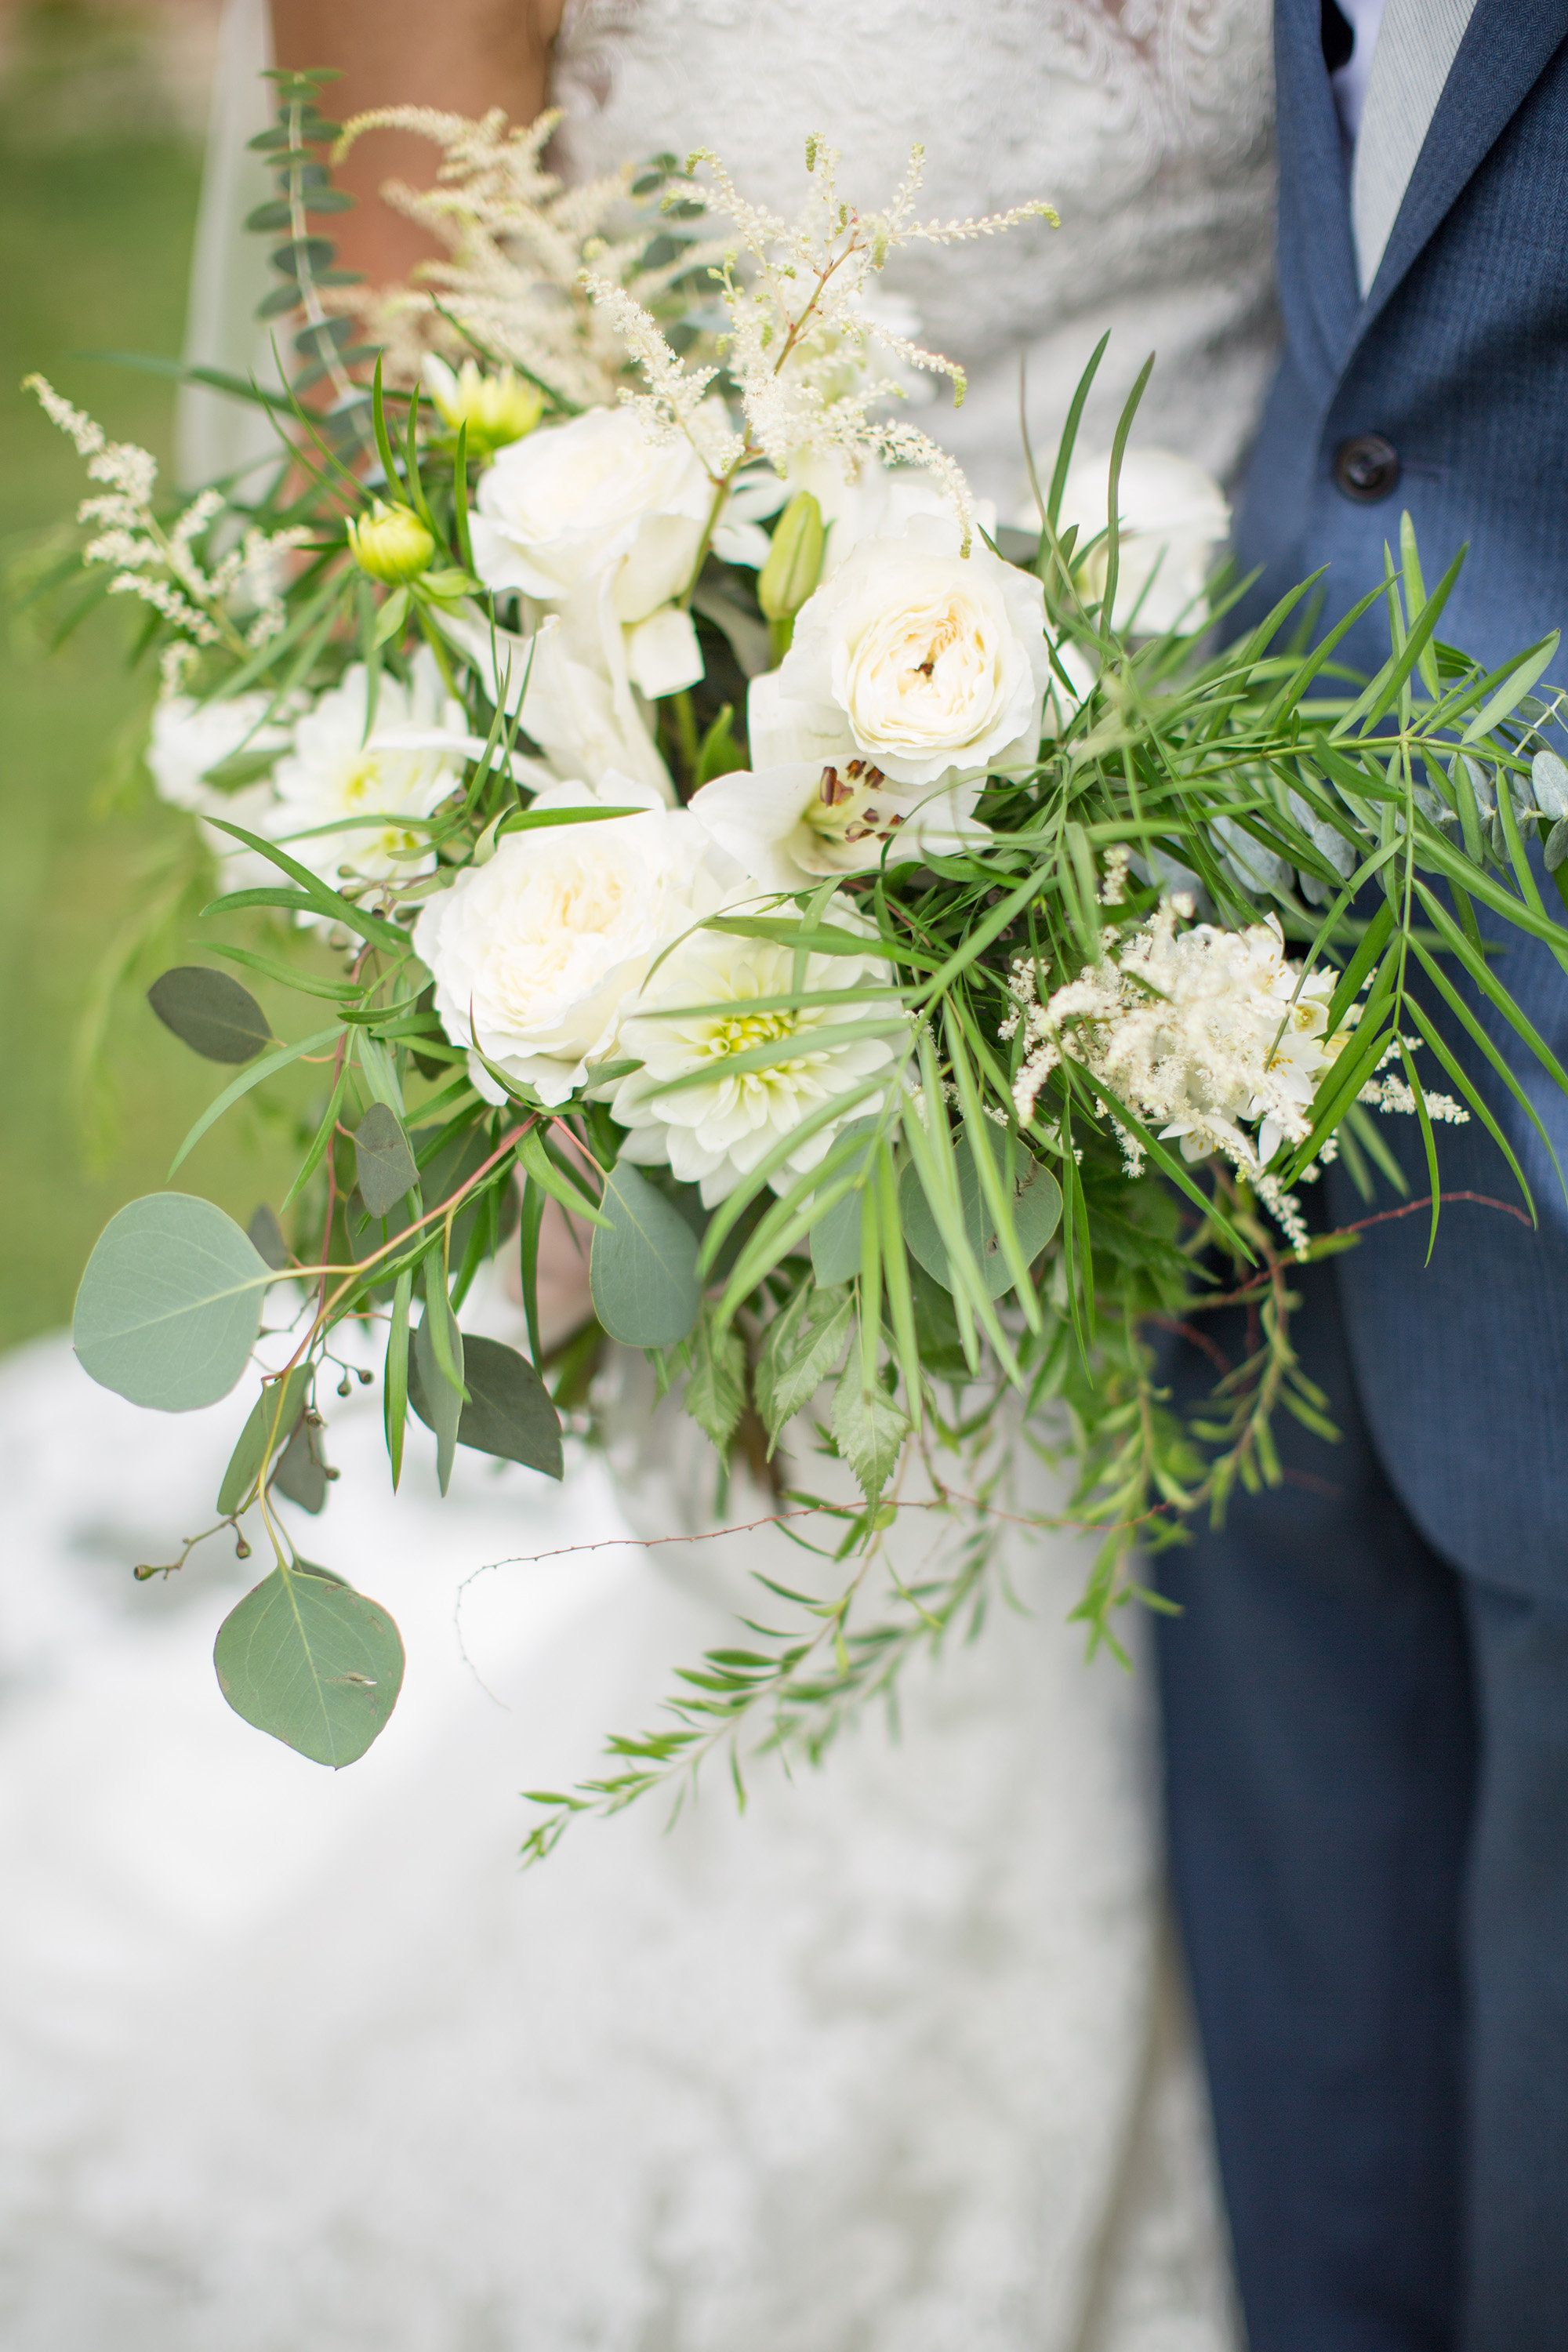 Simple Bridal Bouquet With Greenery And White Flowers Greenery